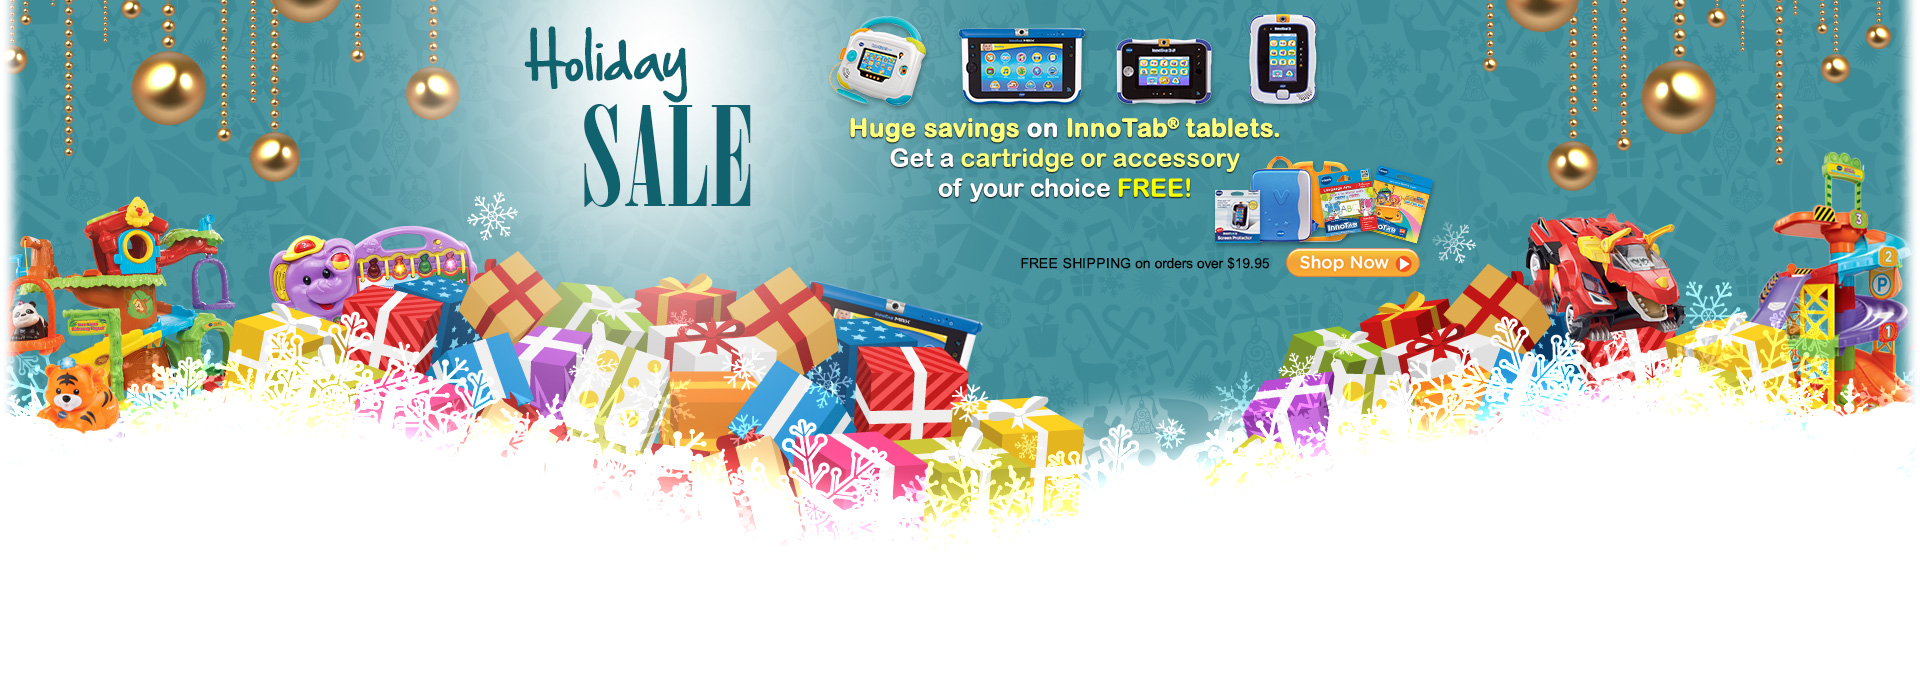 Thanksgiving SALE - Hung savings on InnoTab tablets.